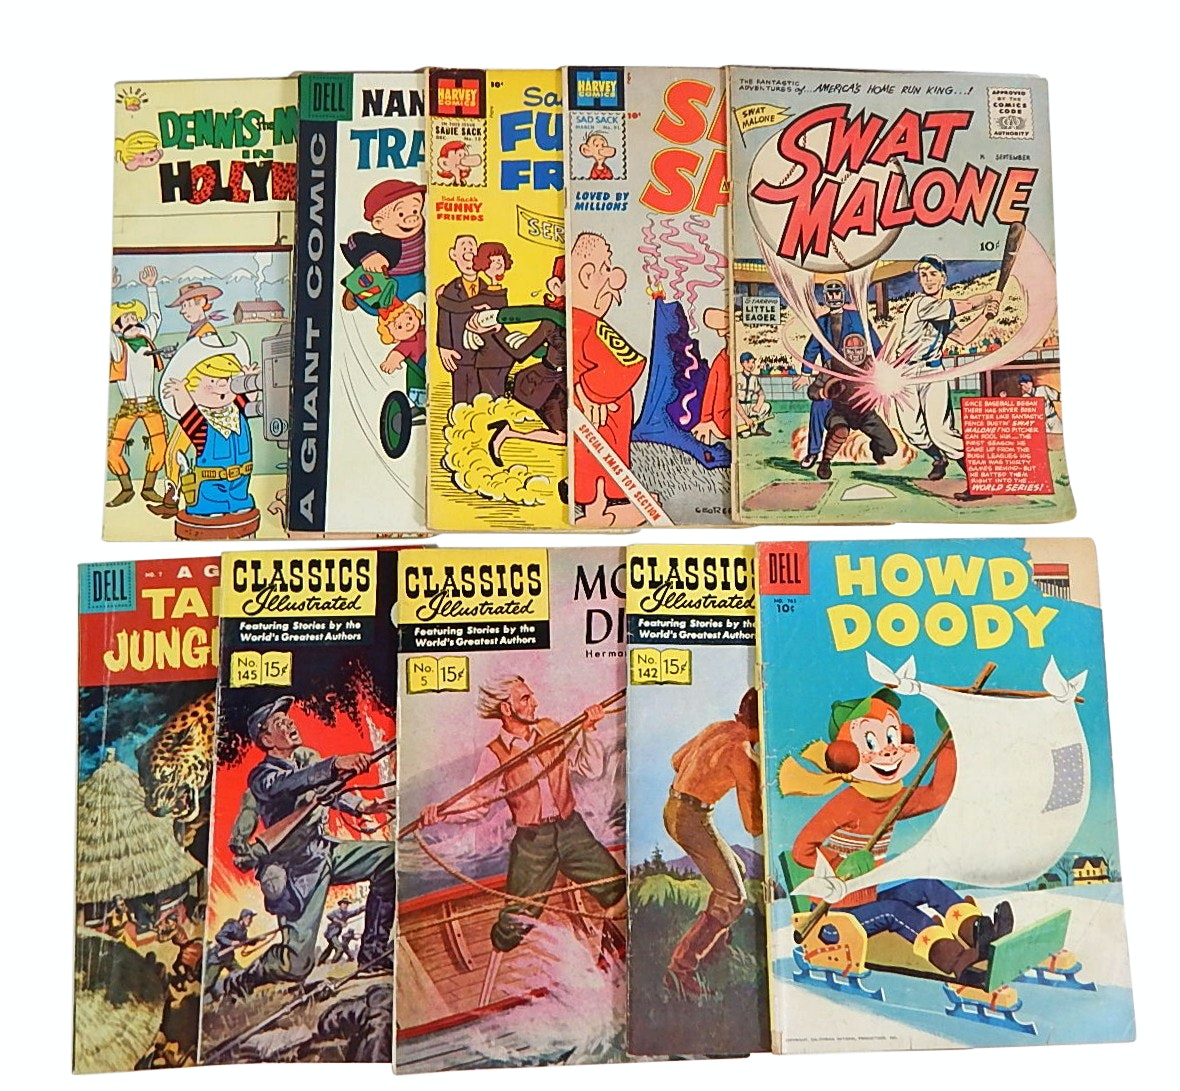 1950s Comic Books Ebth